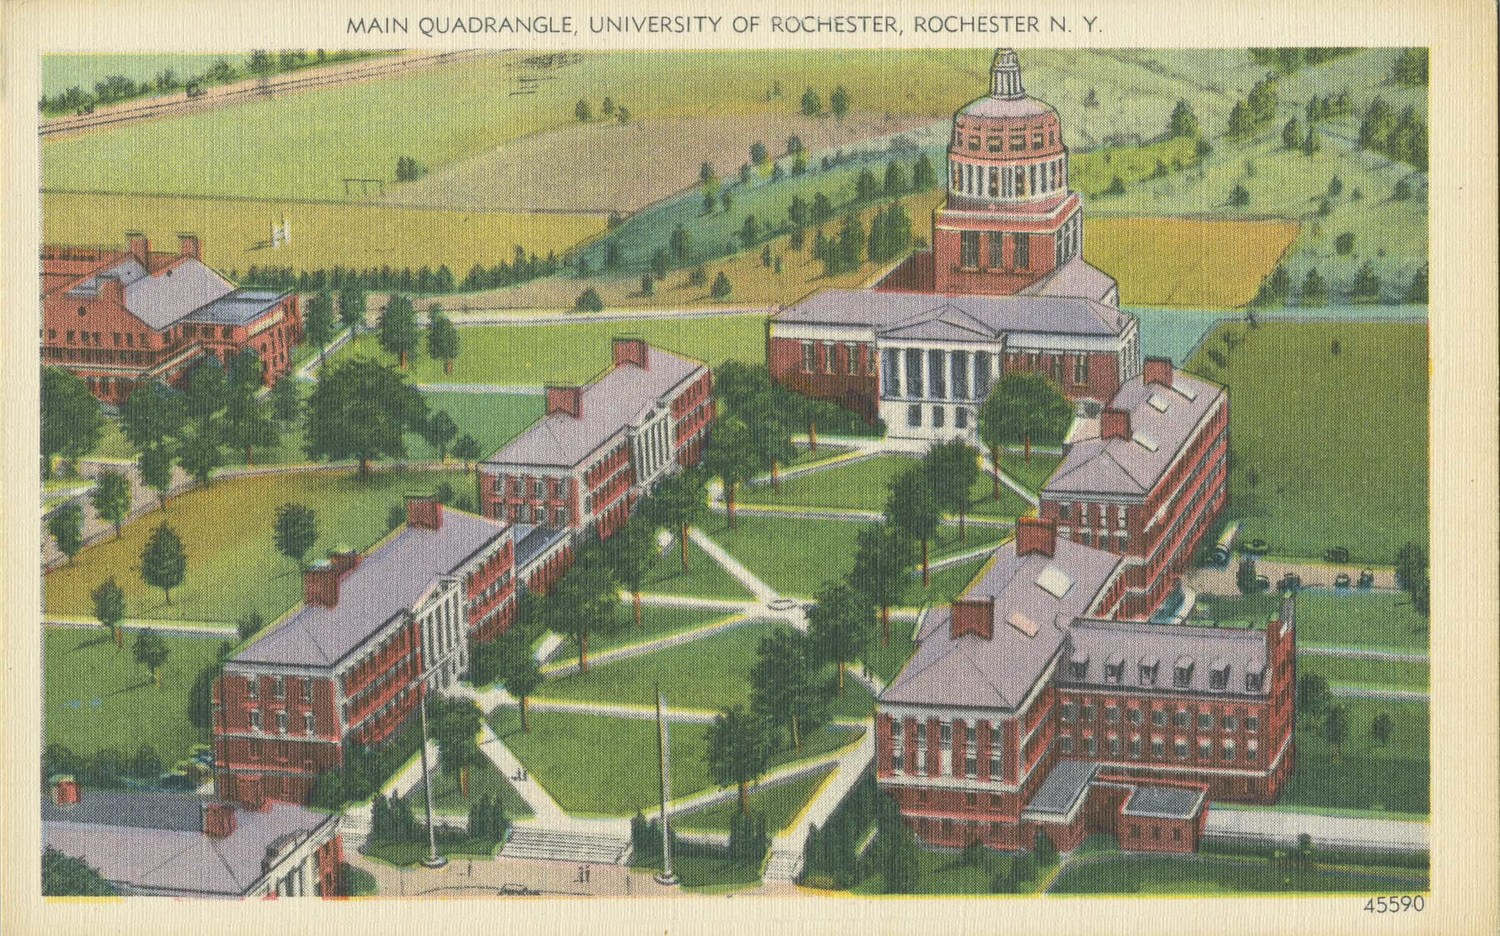 Main Quadrangle, University of Rochester, Rochester, N.Y.